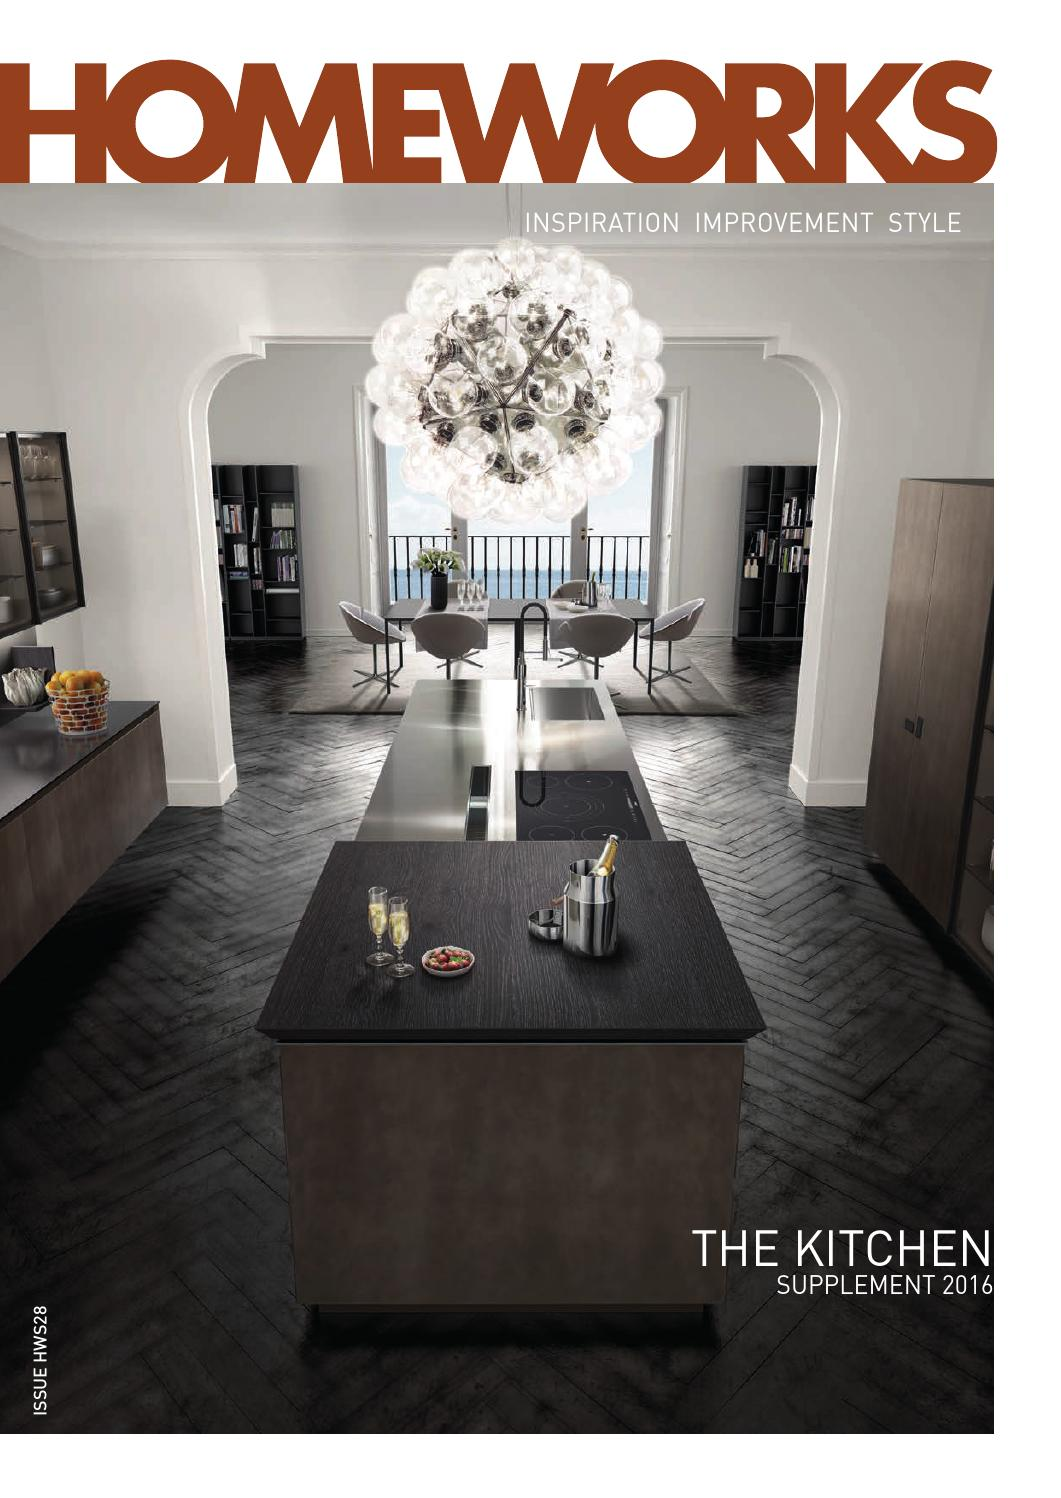 homeworks kitchen supplement 2016 by writeon ltd issuu antis fusion fitted kitchens euromobil